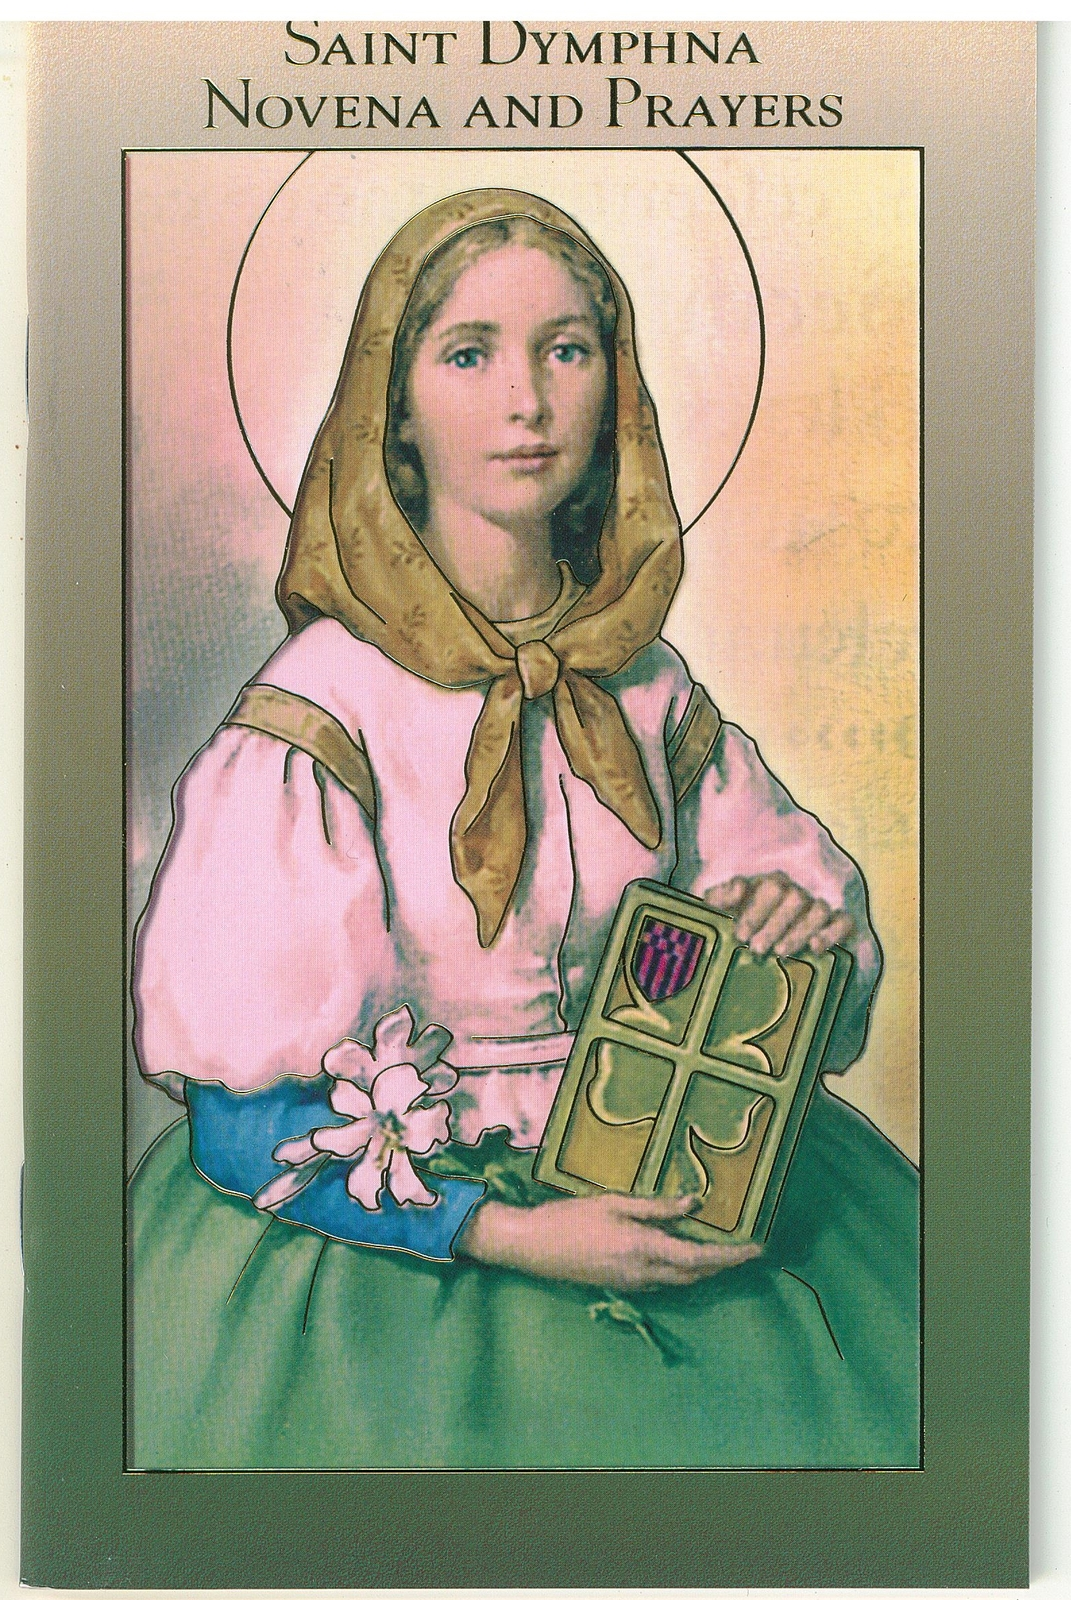 Primary image for Saint Dymphna Novena and Prayers